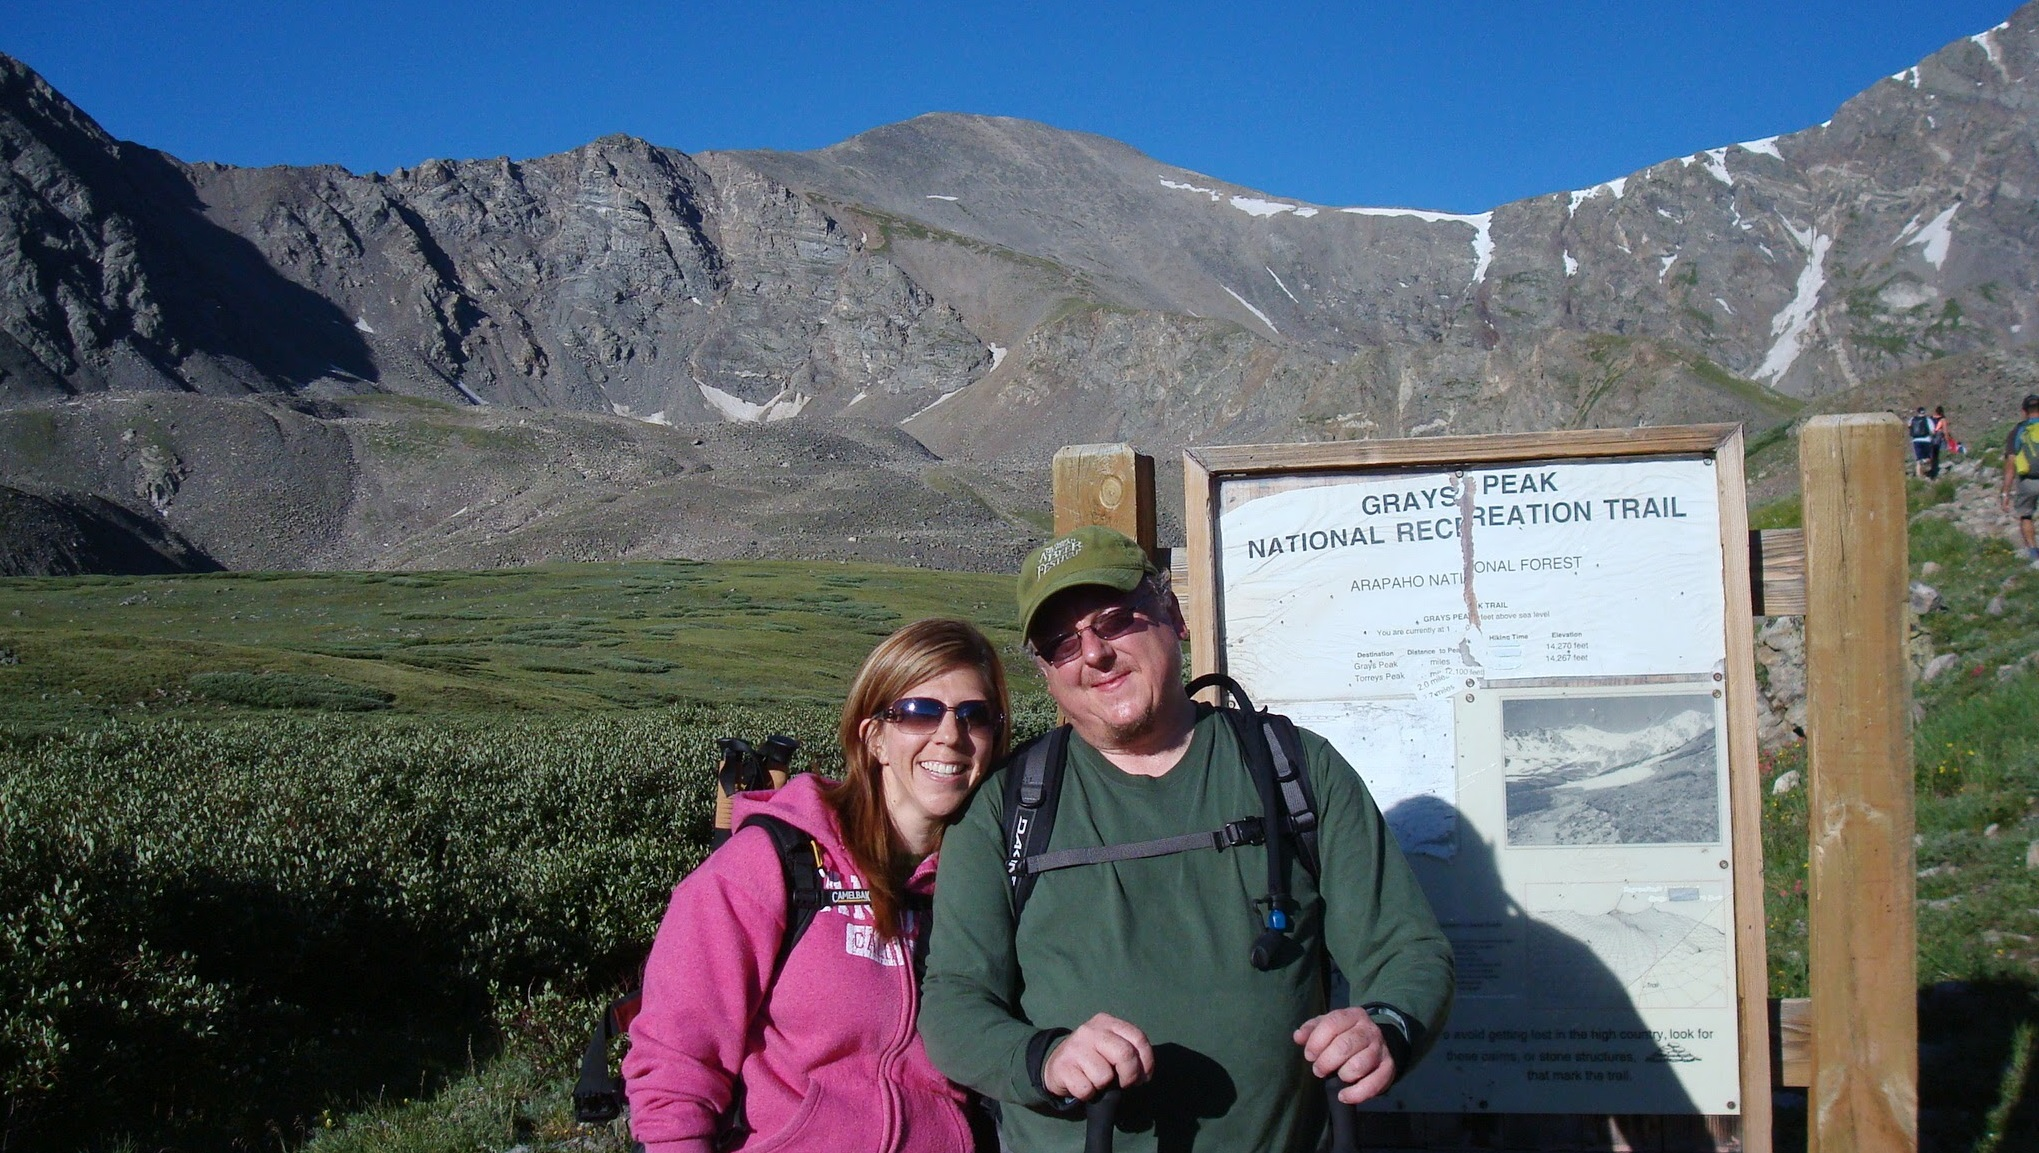 Garry and Mindy, hiking Grey's Peak, one of Colorado's 14ers